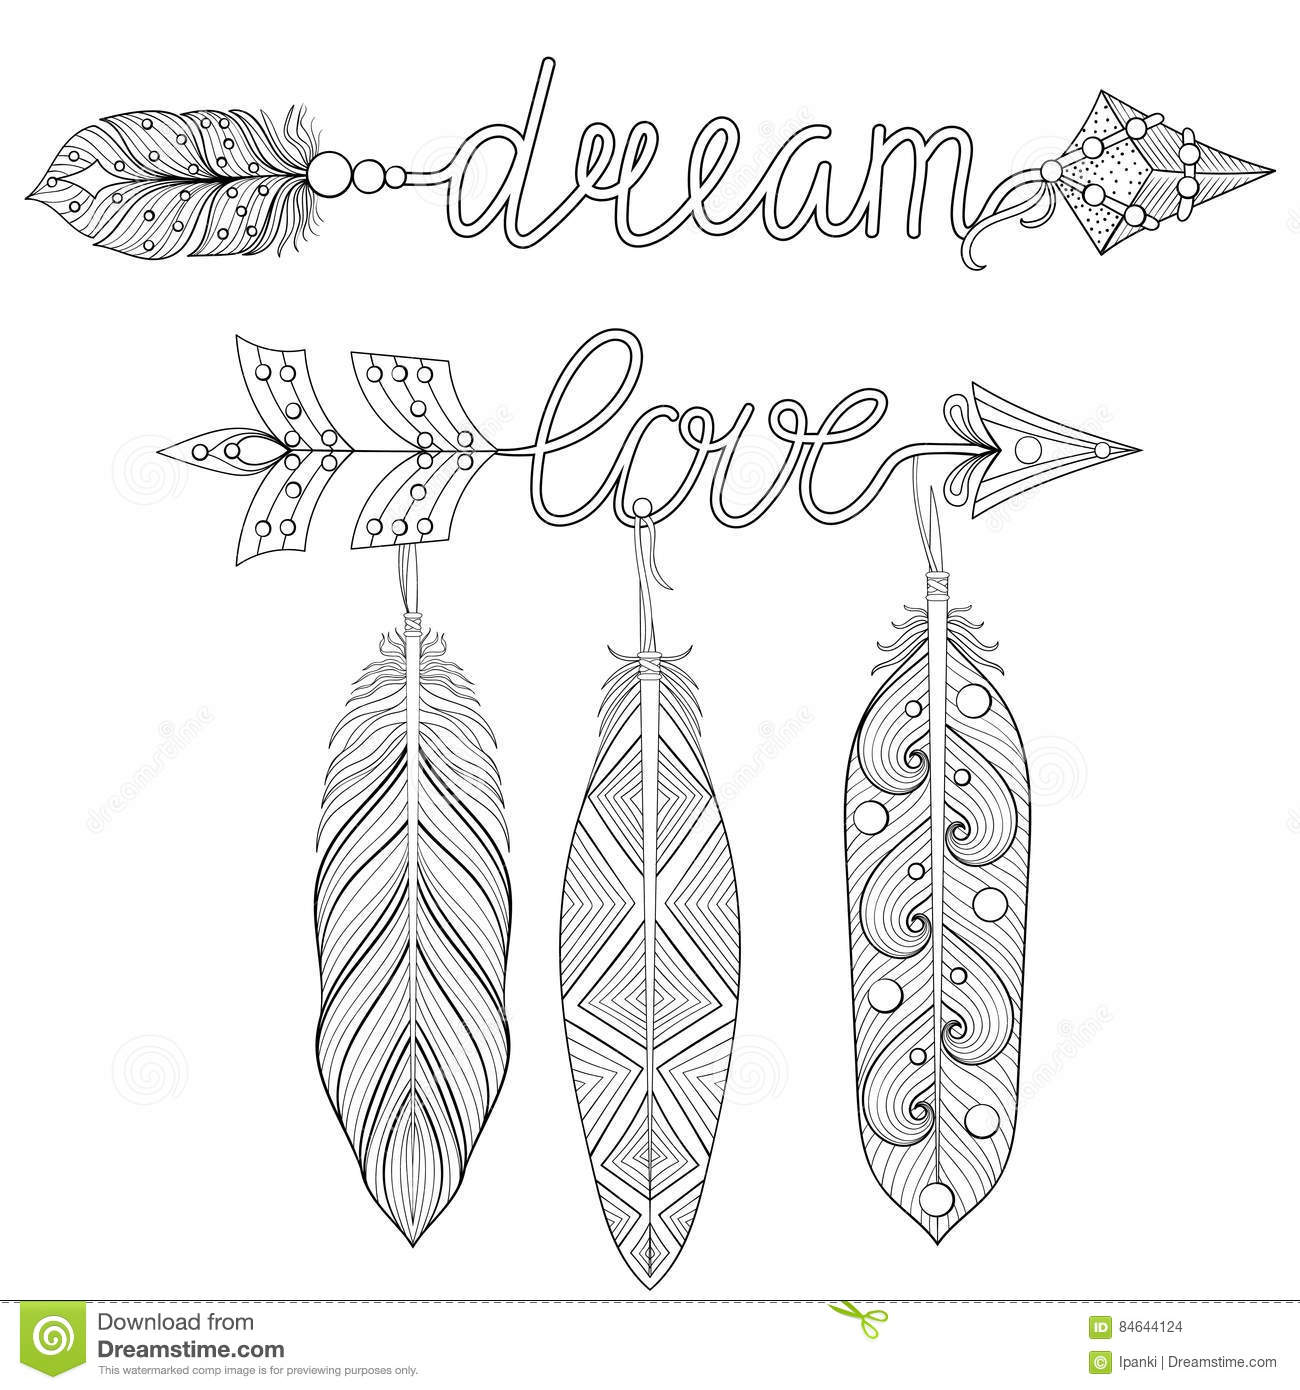 Feather free printable coloring pages for older kids | Free ... | 1390x1300